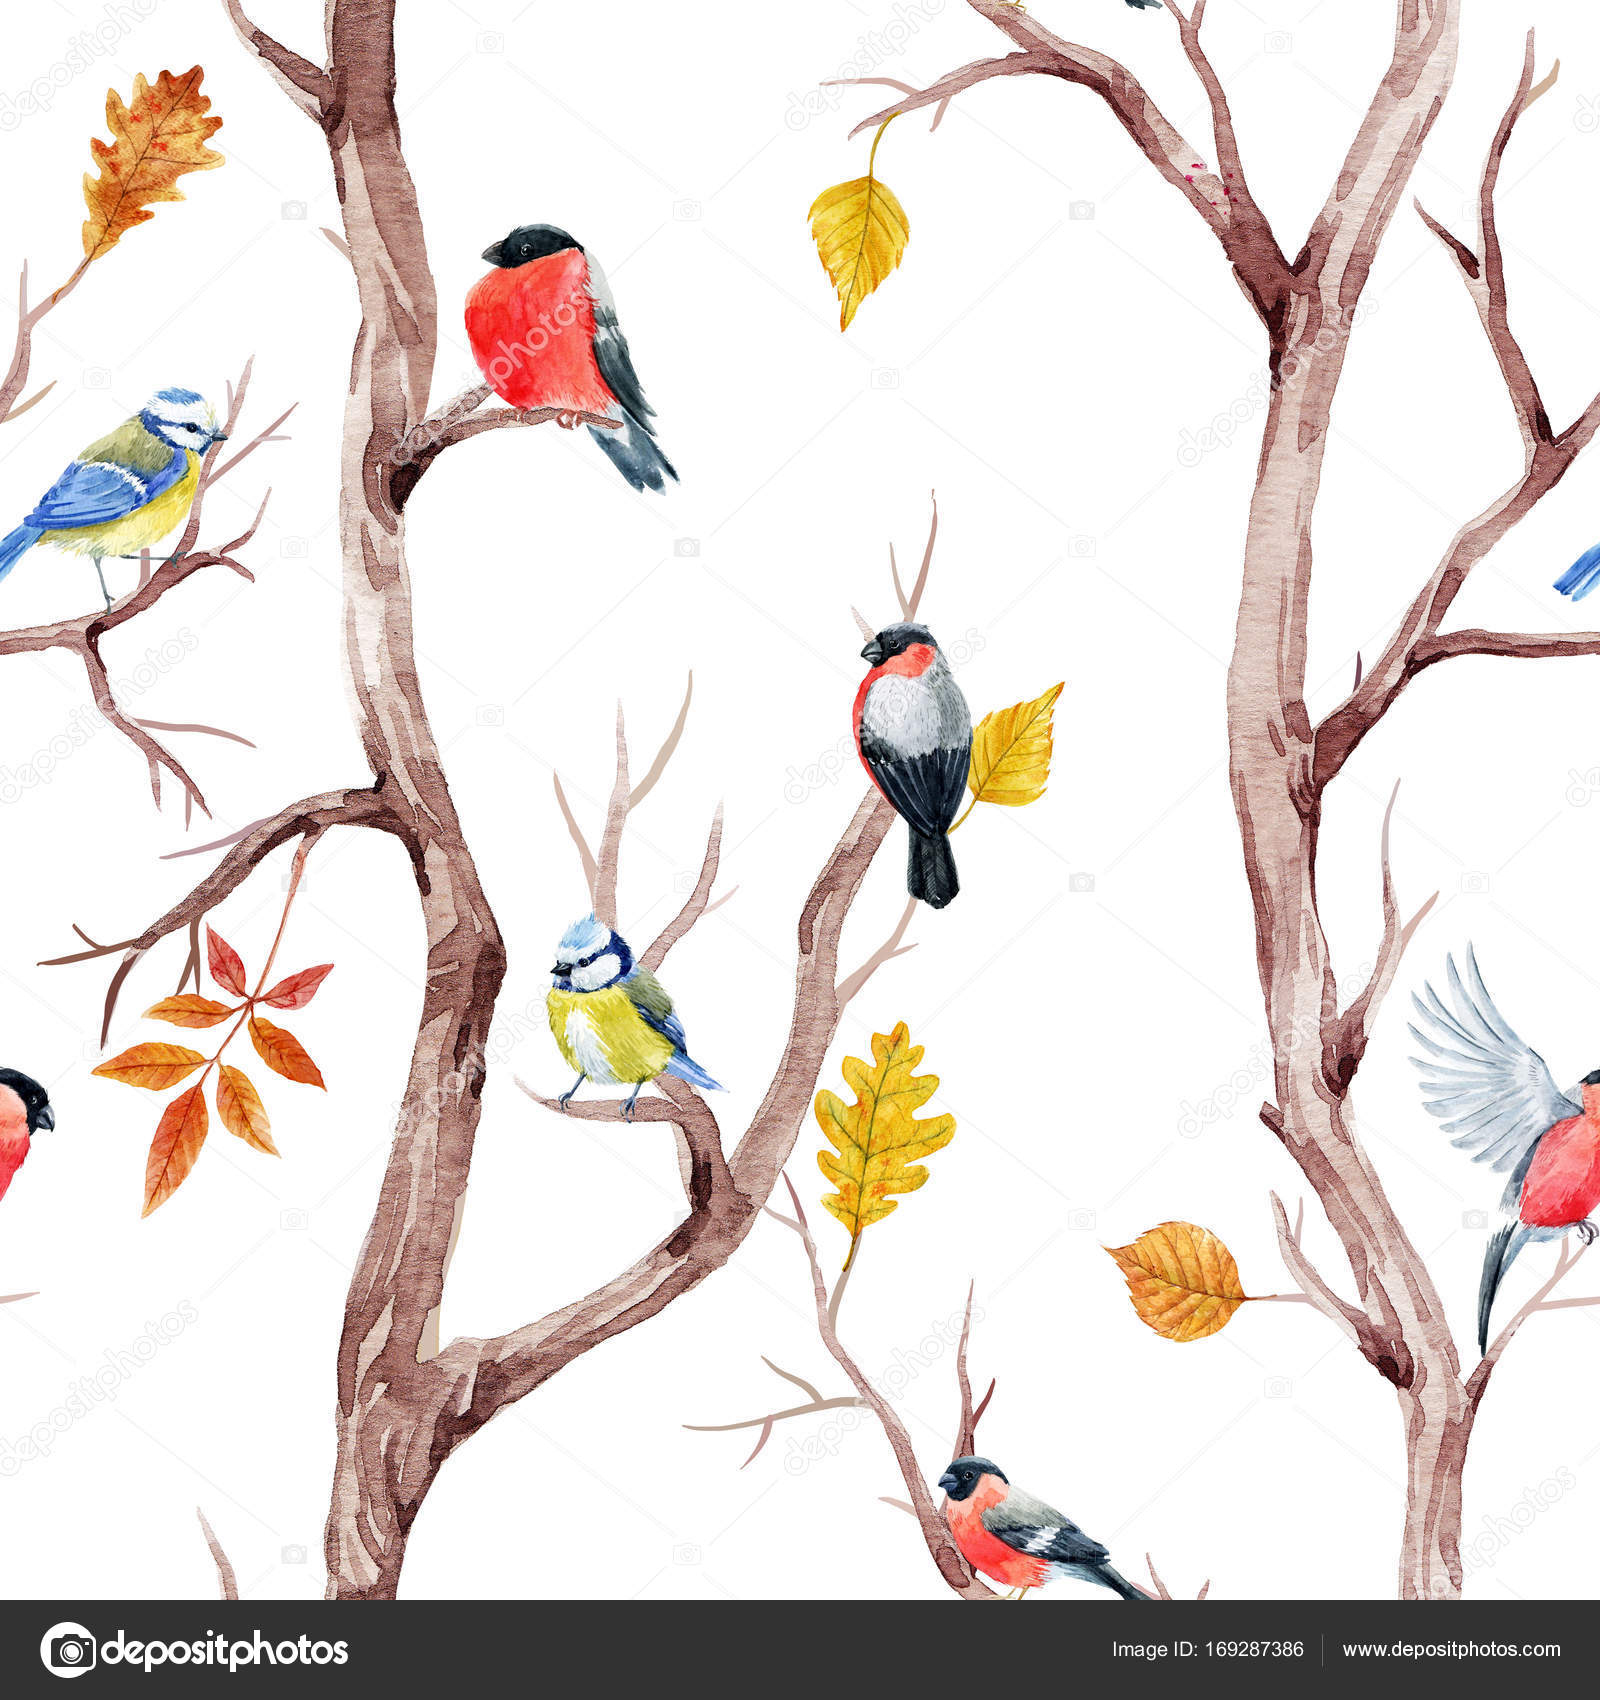 Fall trees and birds pattern — Stock Photo © ZeninaAsya #169287386